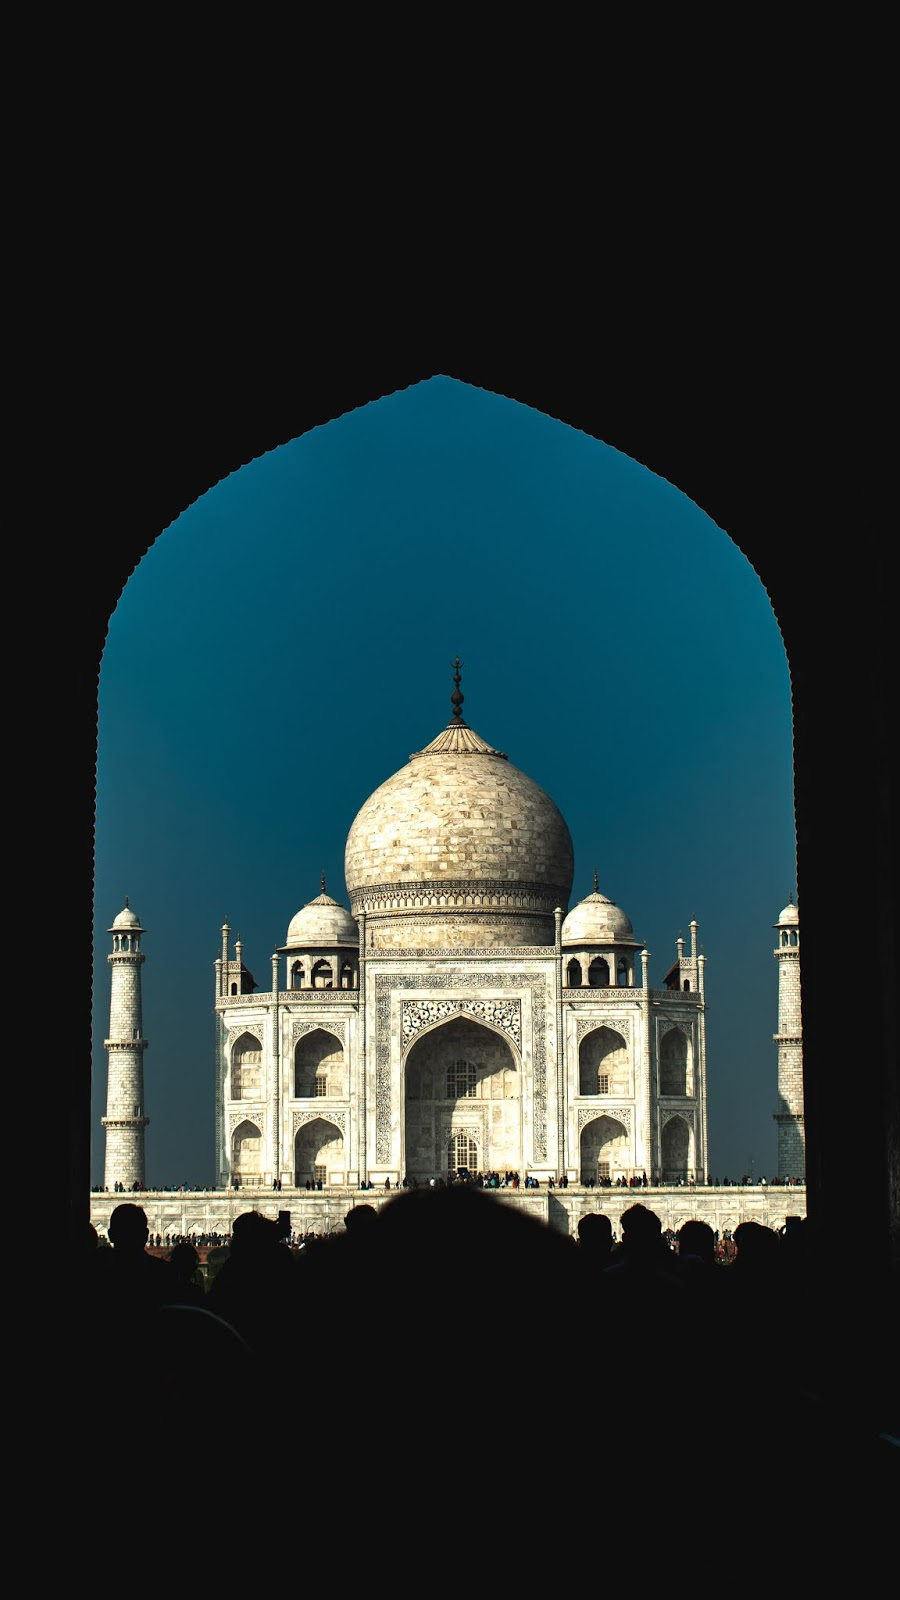 100+[HD] TajMahal Wallpapers - Backgrounds pic